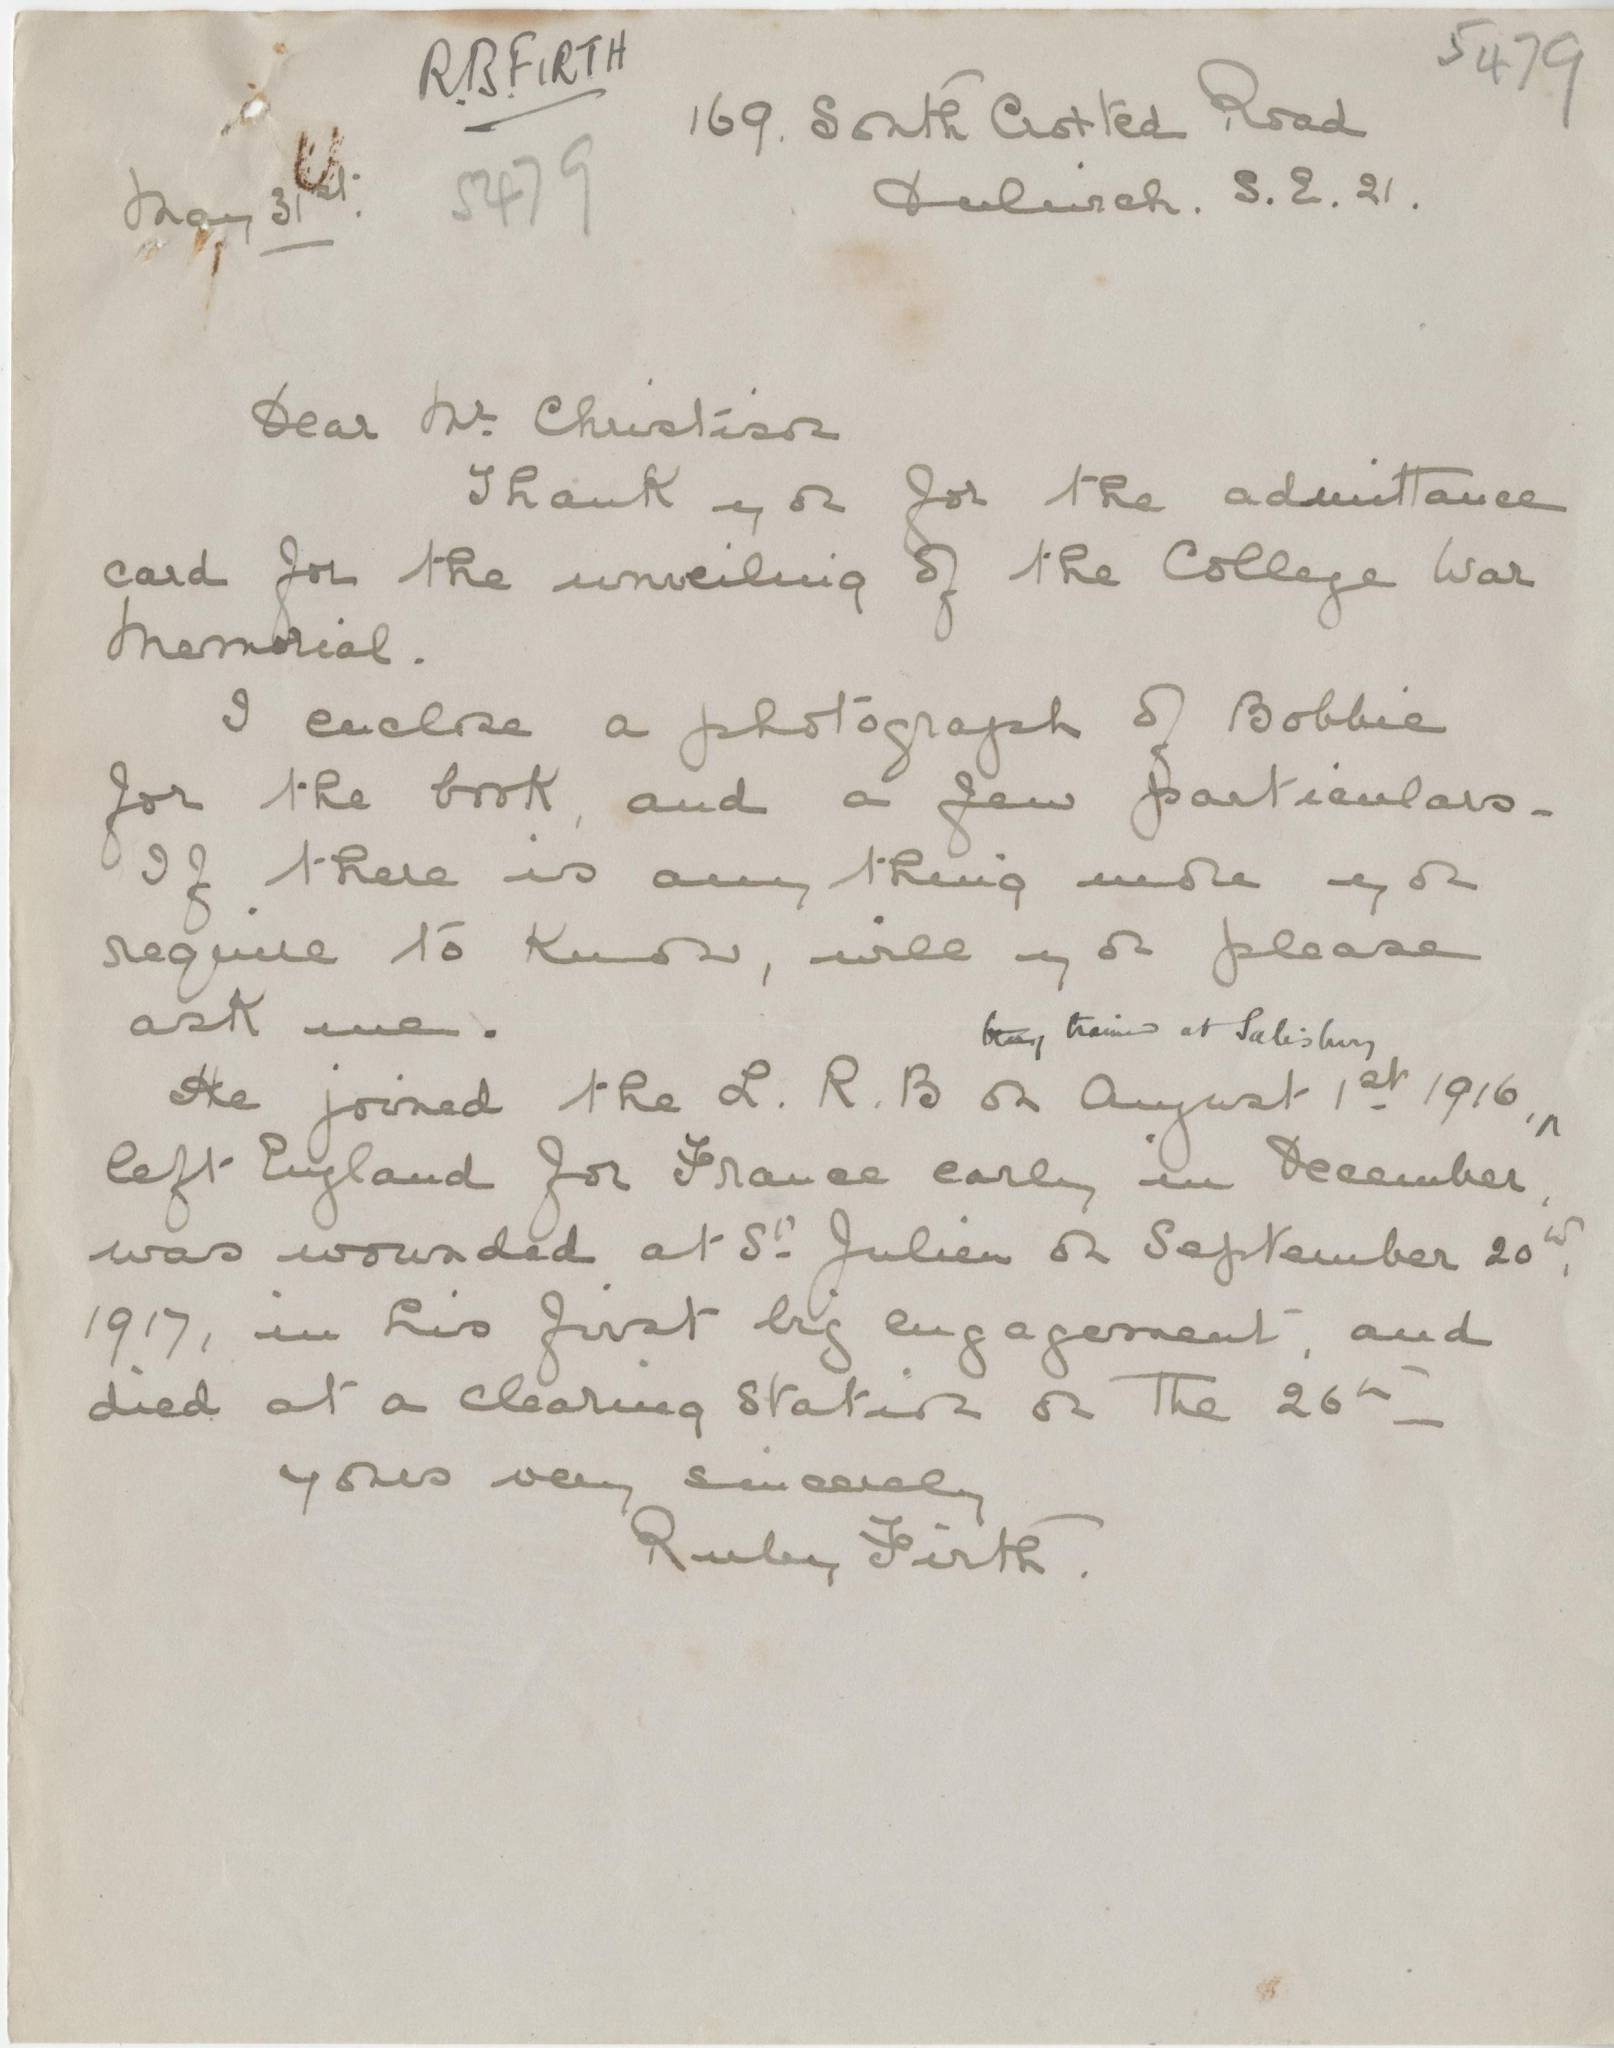 Firth RB Widow Letter